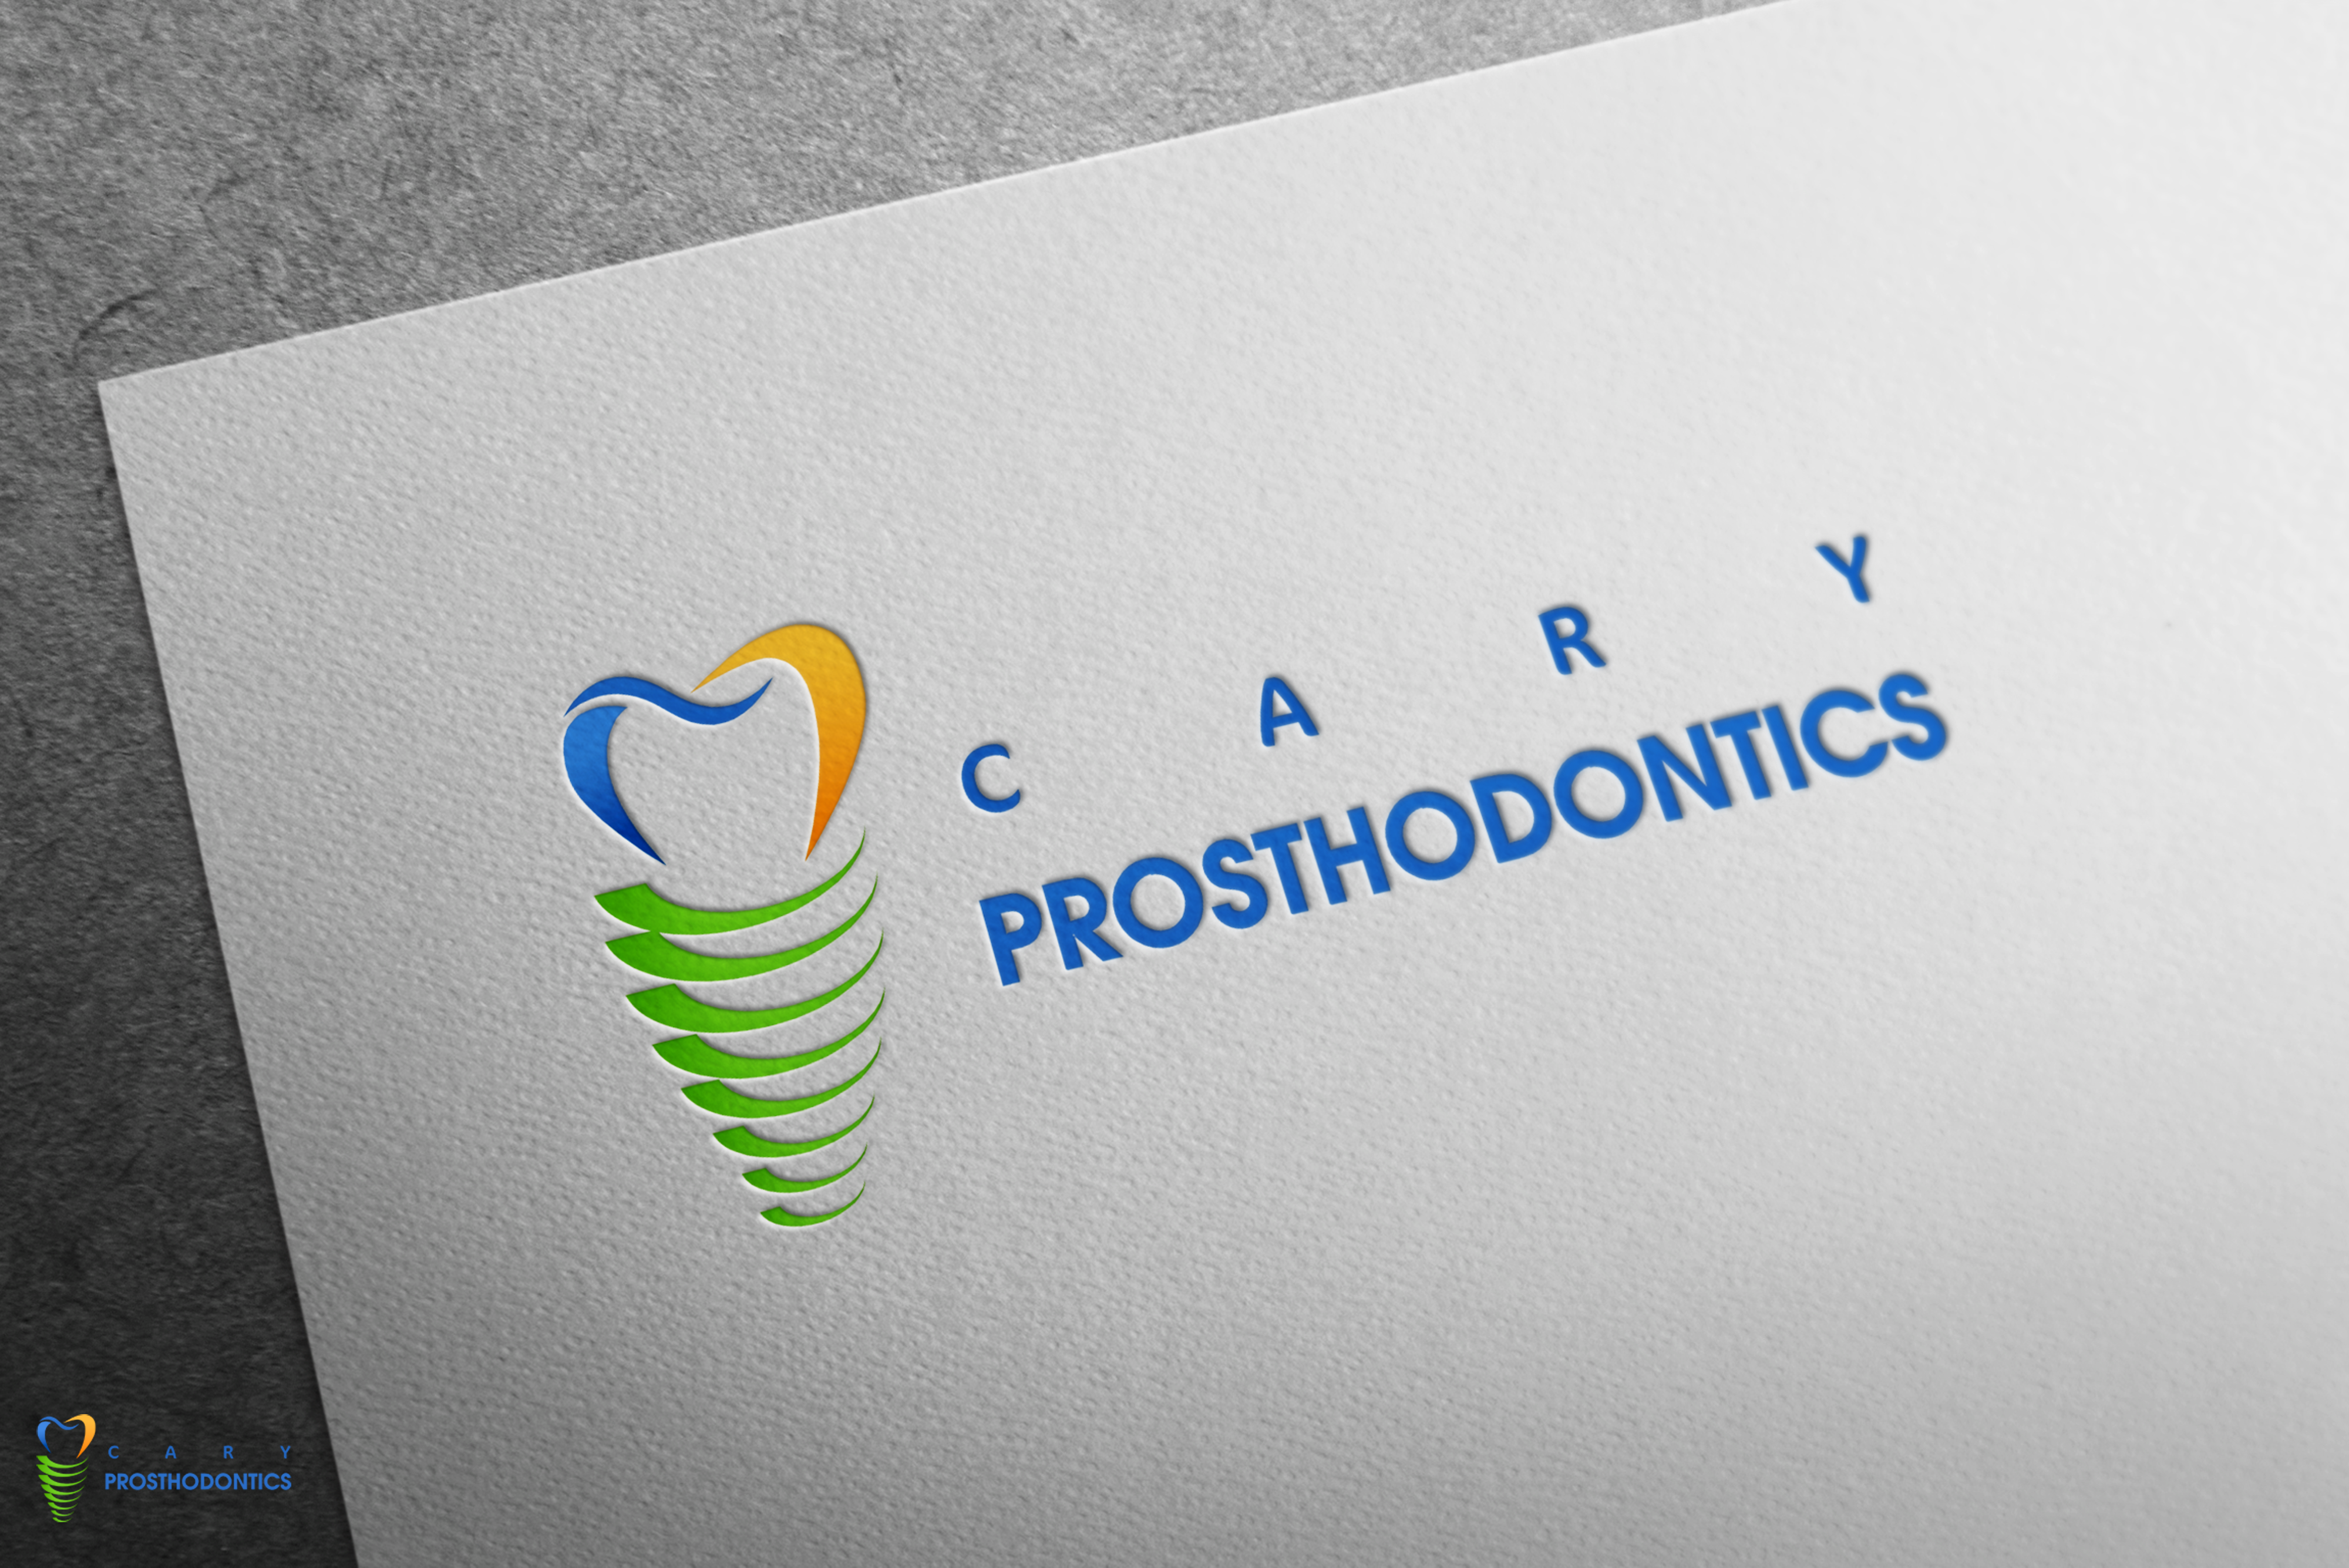 Logo Design by Hania Hassaan - Entry No. 147 in the Logo Design Contest Cary Prosthodontics Logo Design.